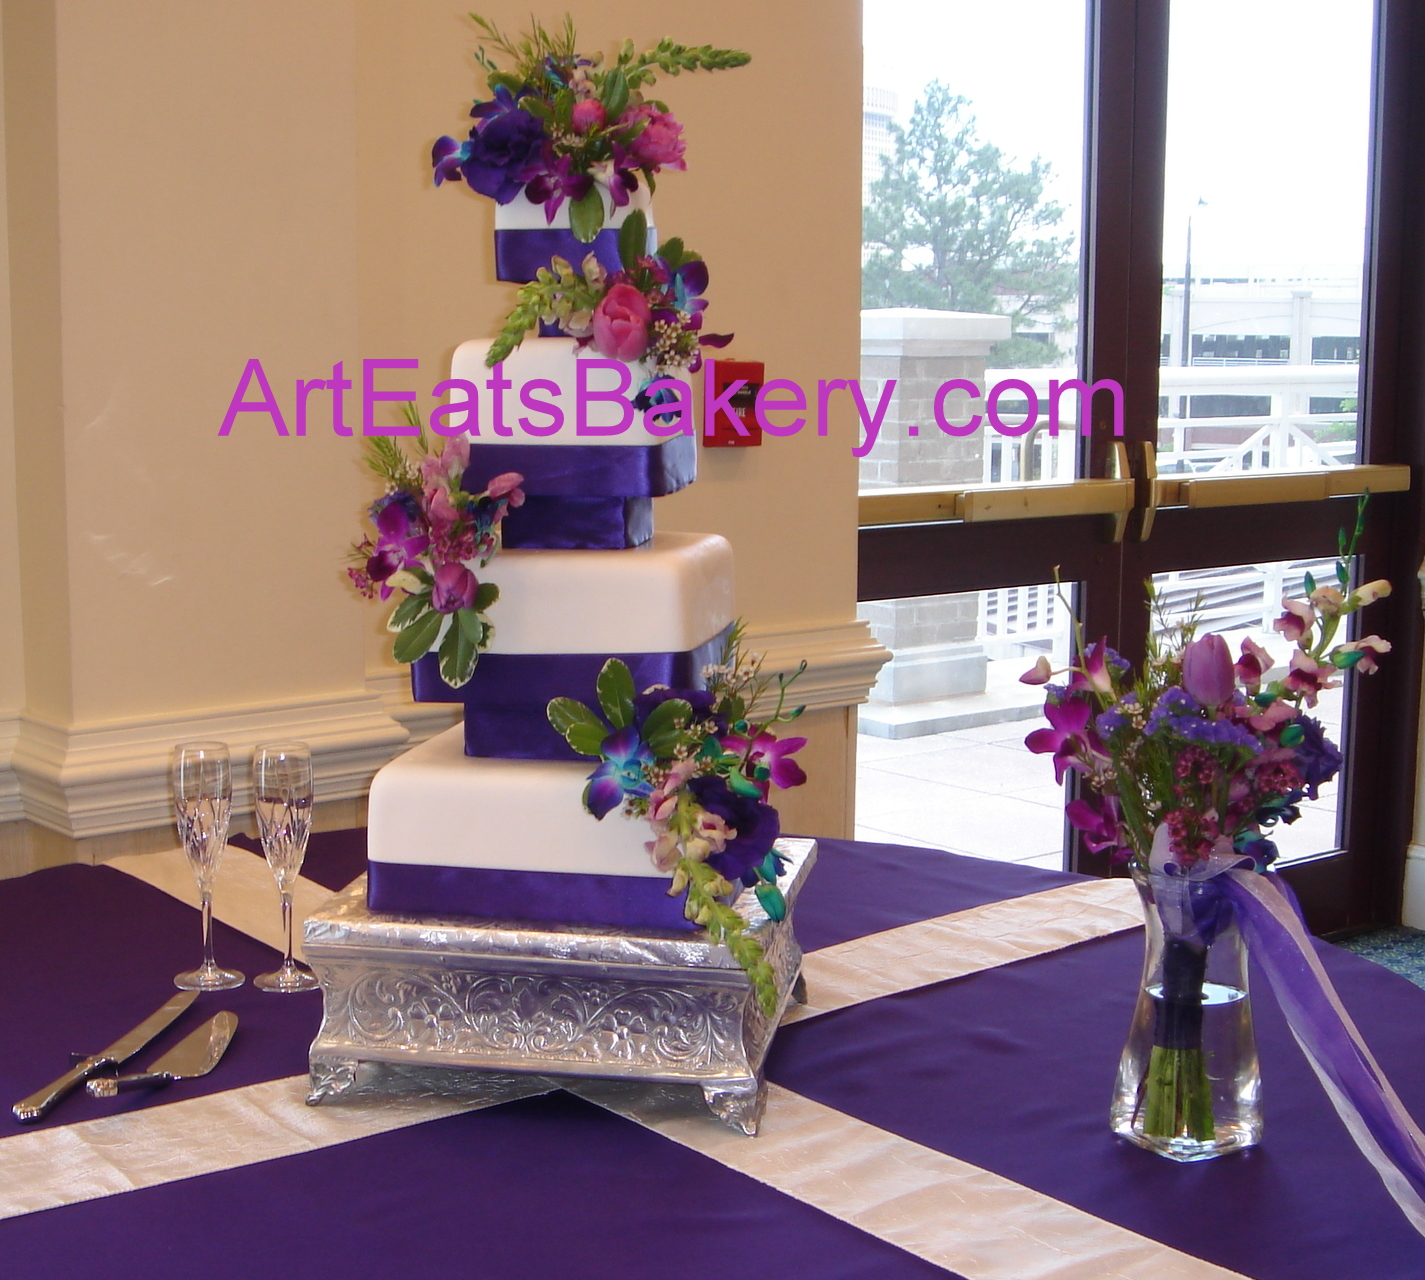 Purple Wedding Cake Ideas: >Unique Four Tier Custom Square Fondant Wedding Cake